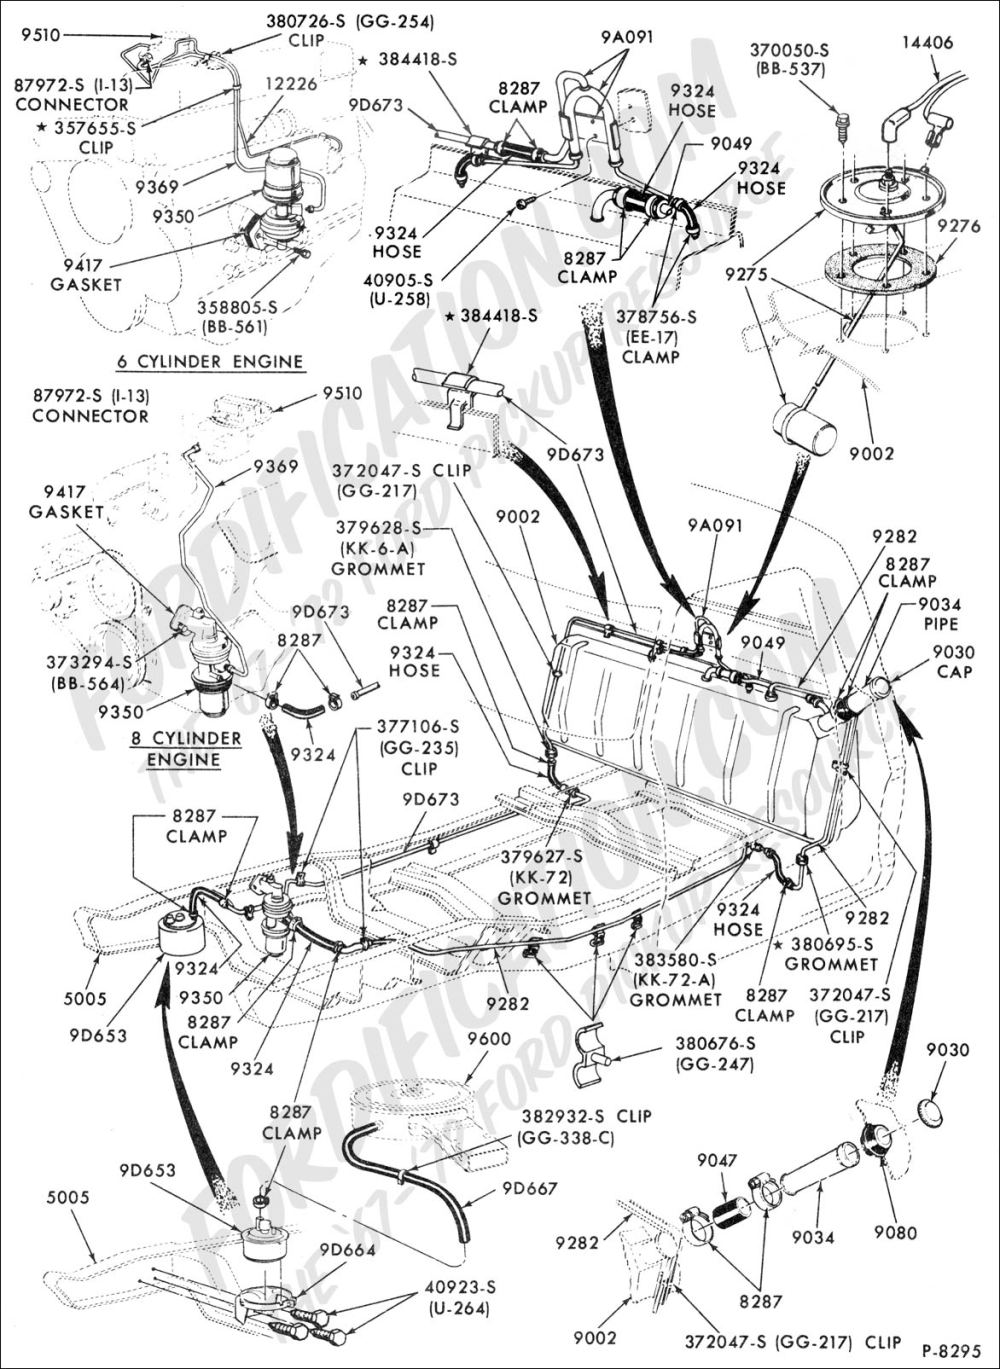 medium resolution of 1990 ford f350 fuel system diagram wiring diagrams bib 1981 ford f350 fuel system diagram data